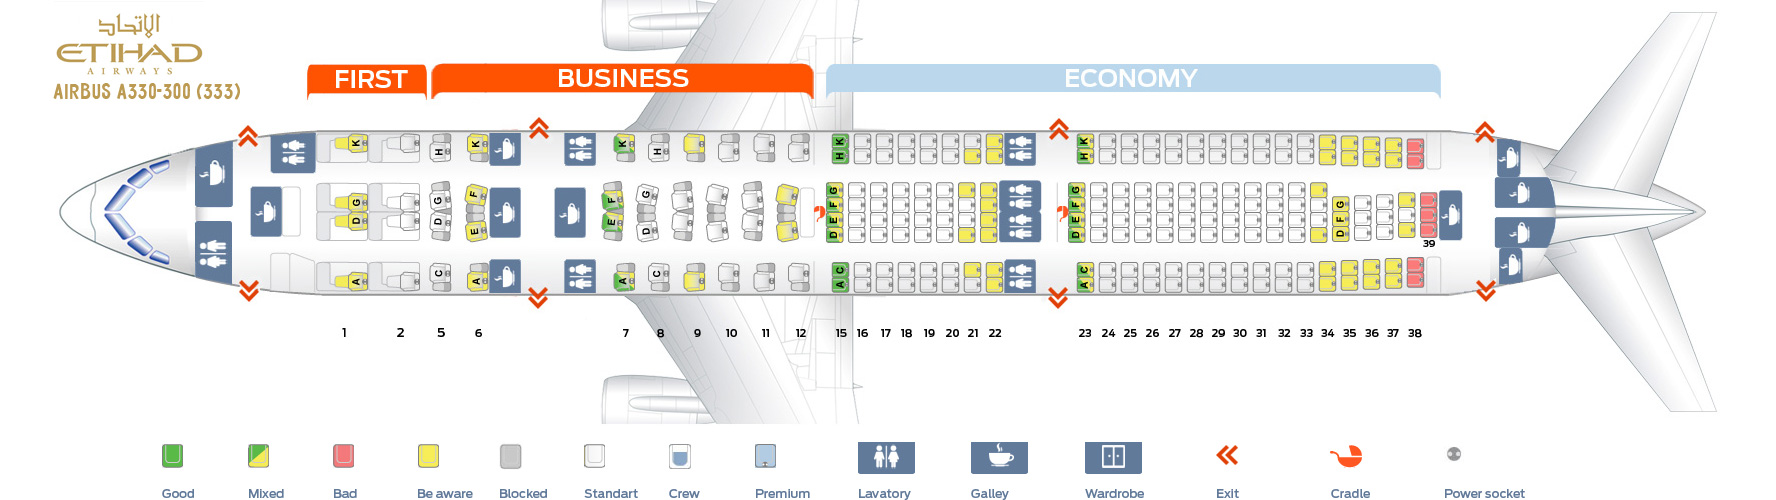 Seat Map Airbus A330-300 Etihad Airways